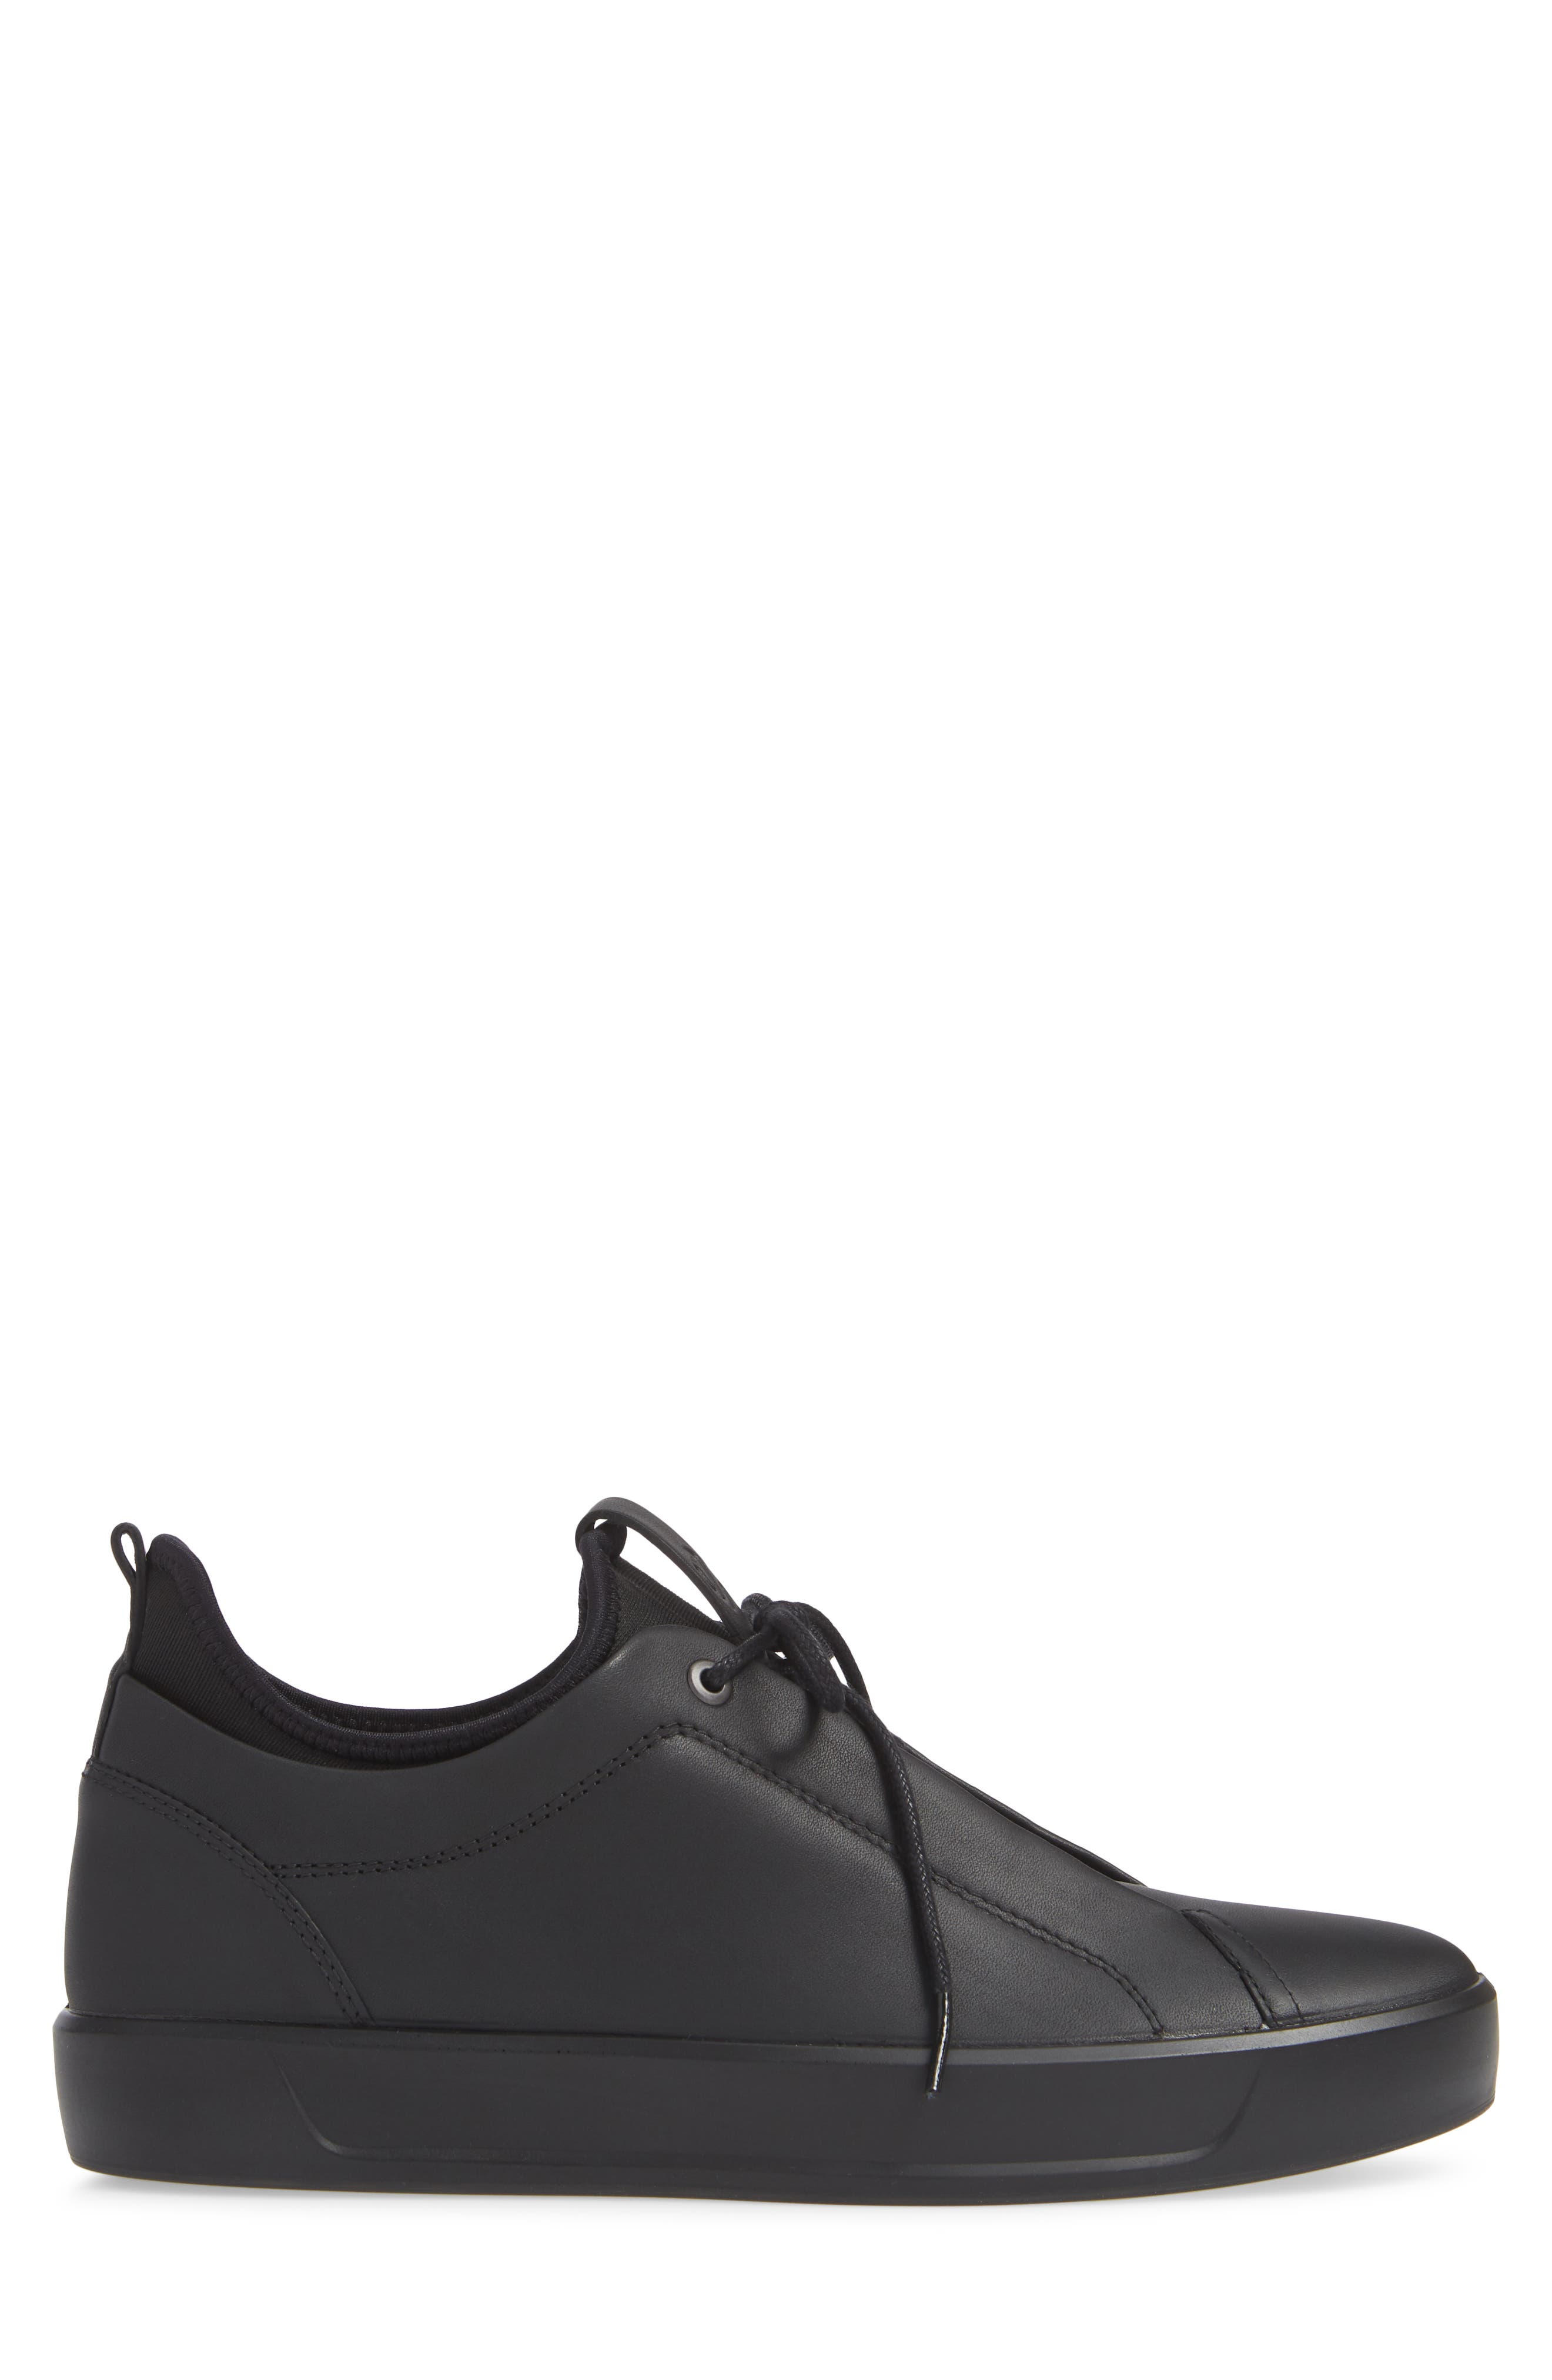 Soft 8 Low Top Sneaker,                             Alternate thumbnail 3, color,                             BLACK LEATHER